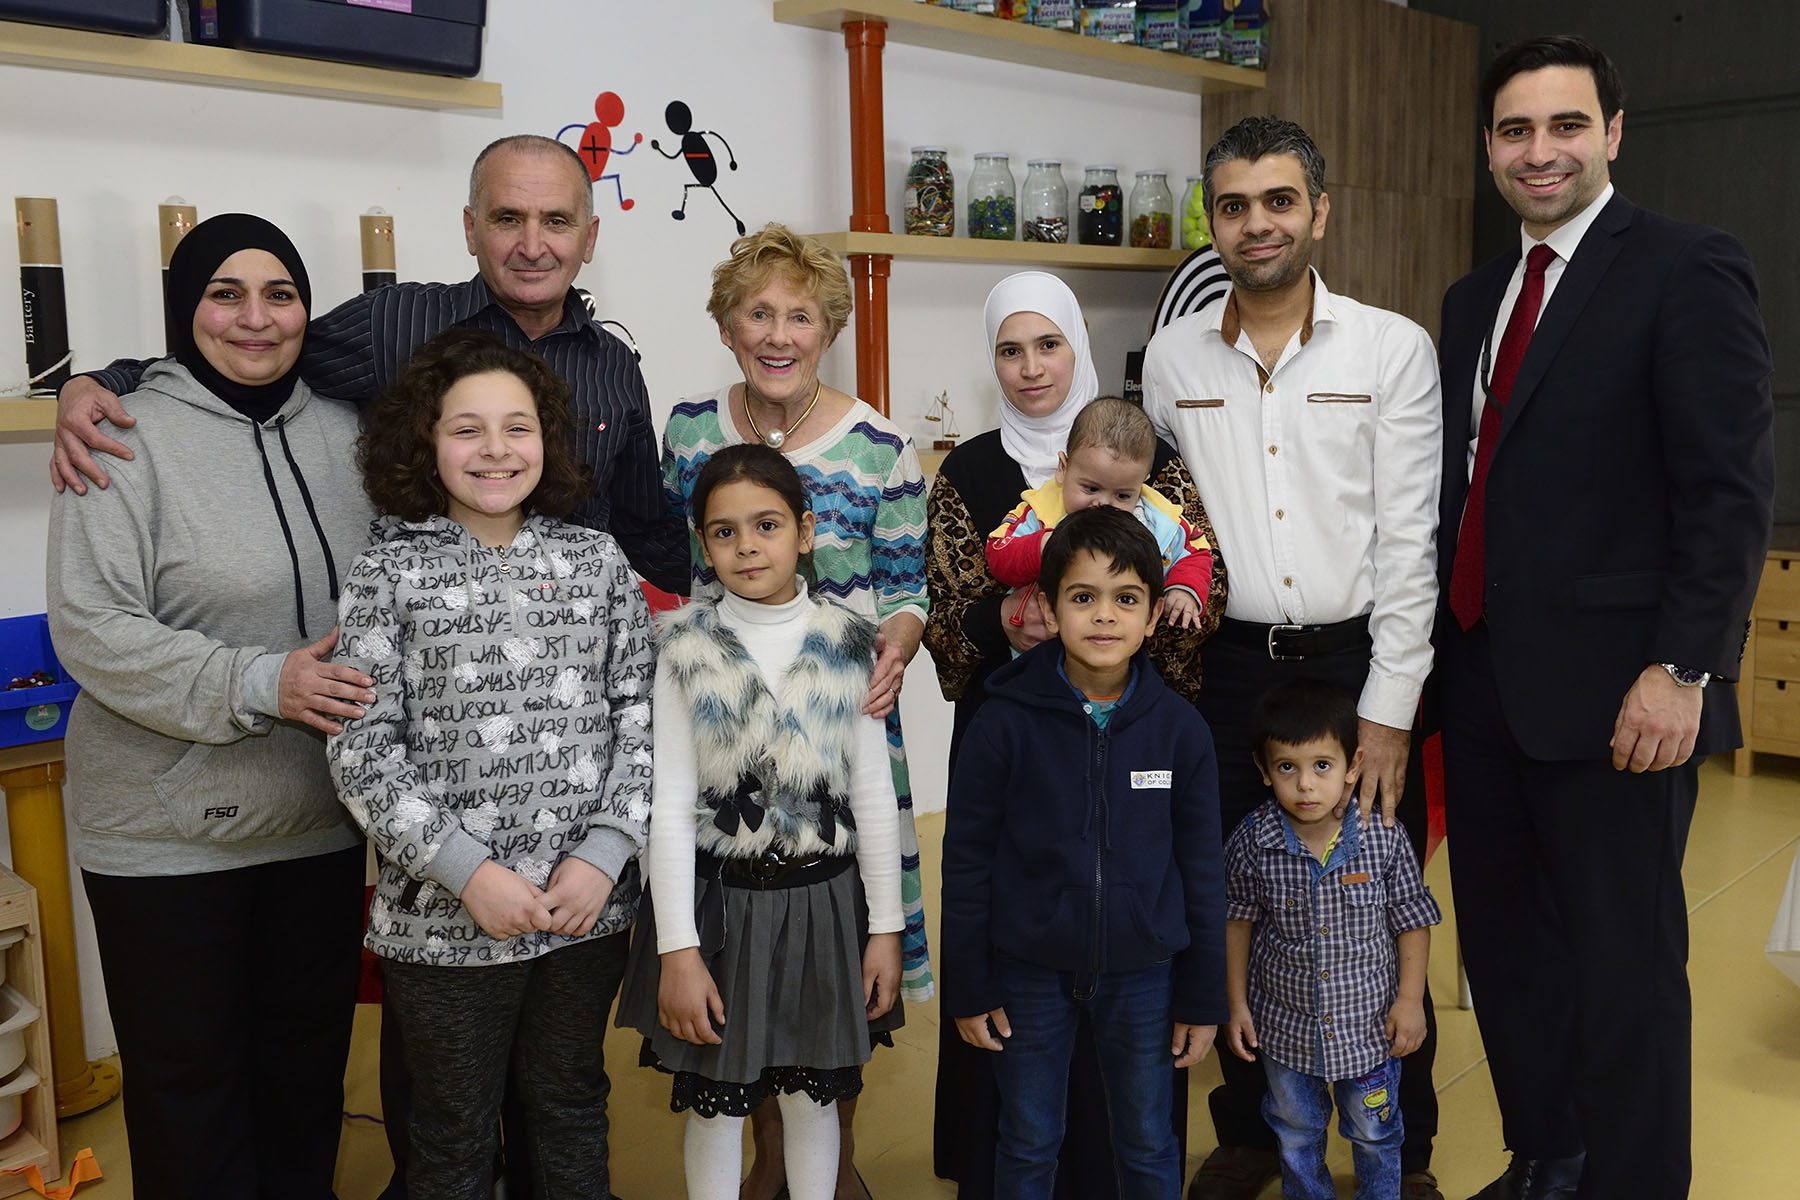 Official photo of Her Excellency and Peter Fragiskatos with the Syrian refugee families.